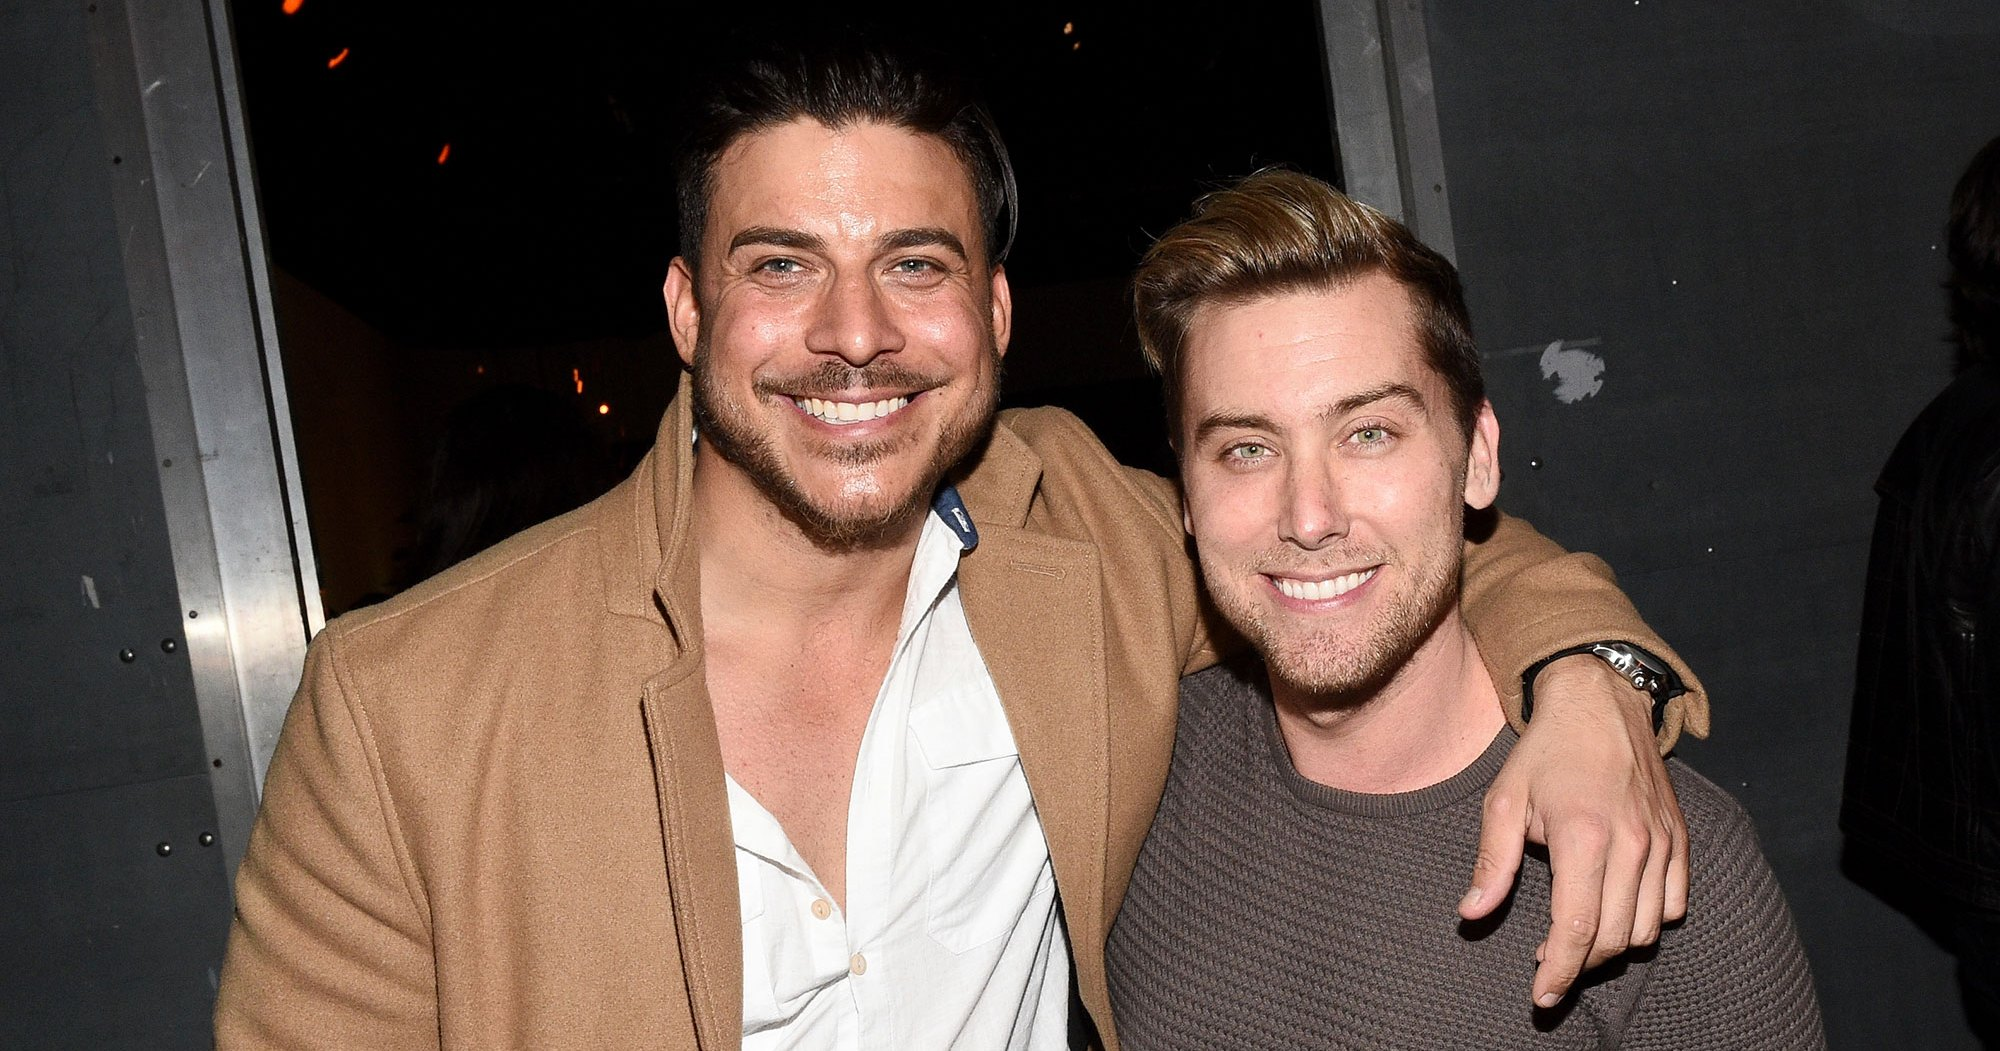 Vanderpump Rules' Jax Taylor Celebrates First Bachelor Party Ahead of Wedding to Brittany Cartwright